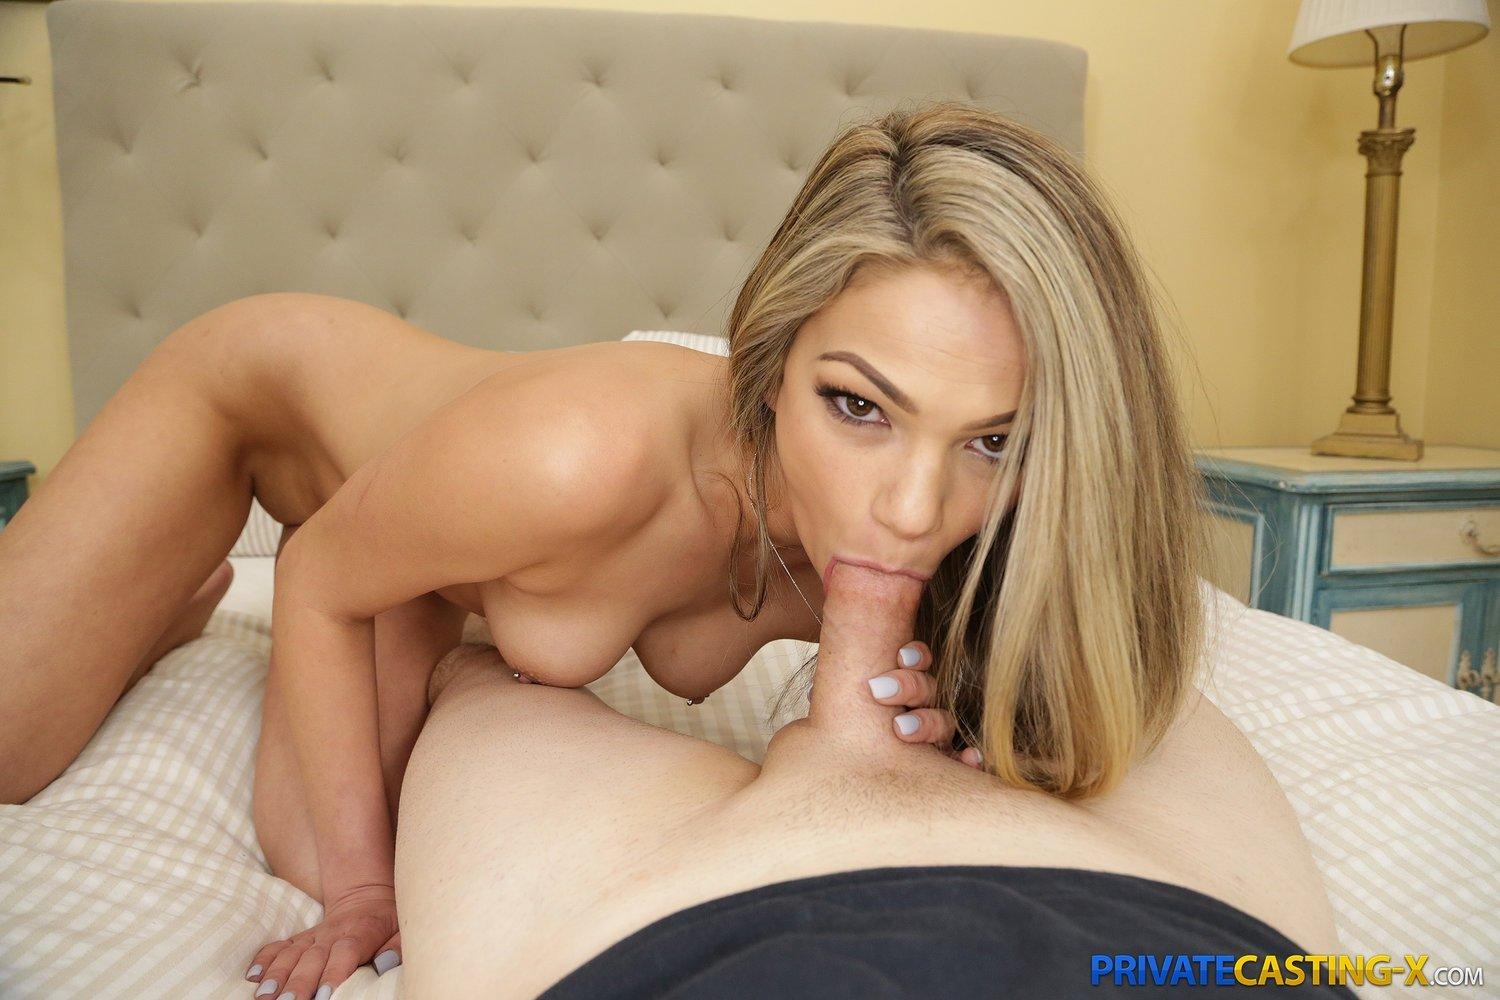 Krissy lynn sex and submission Married guy hidden